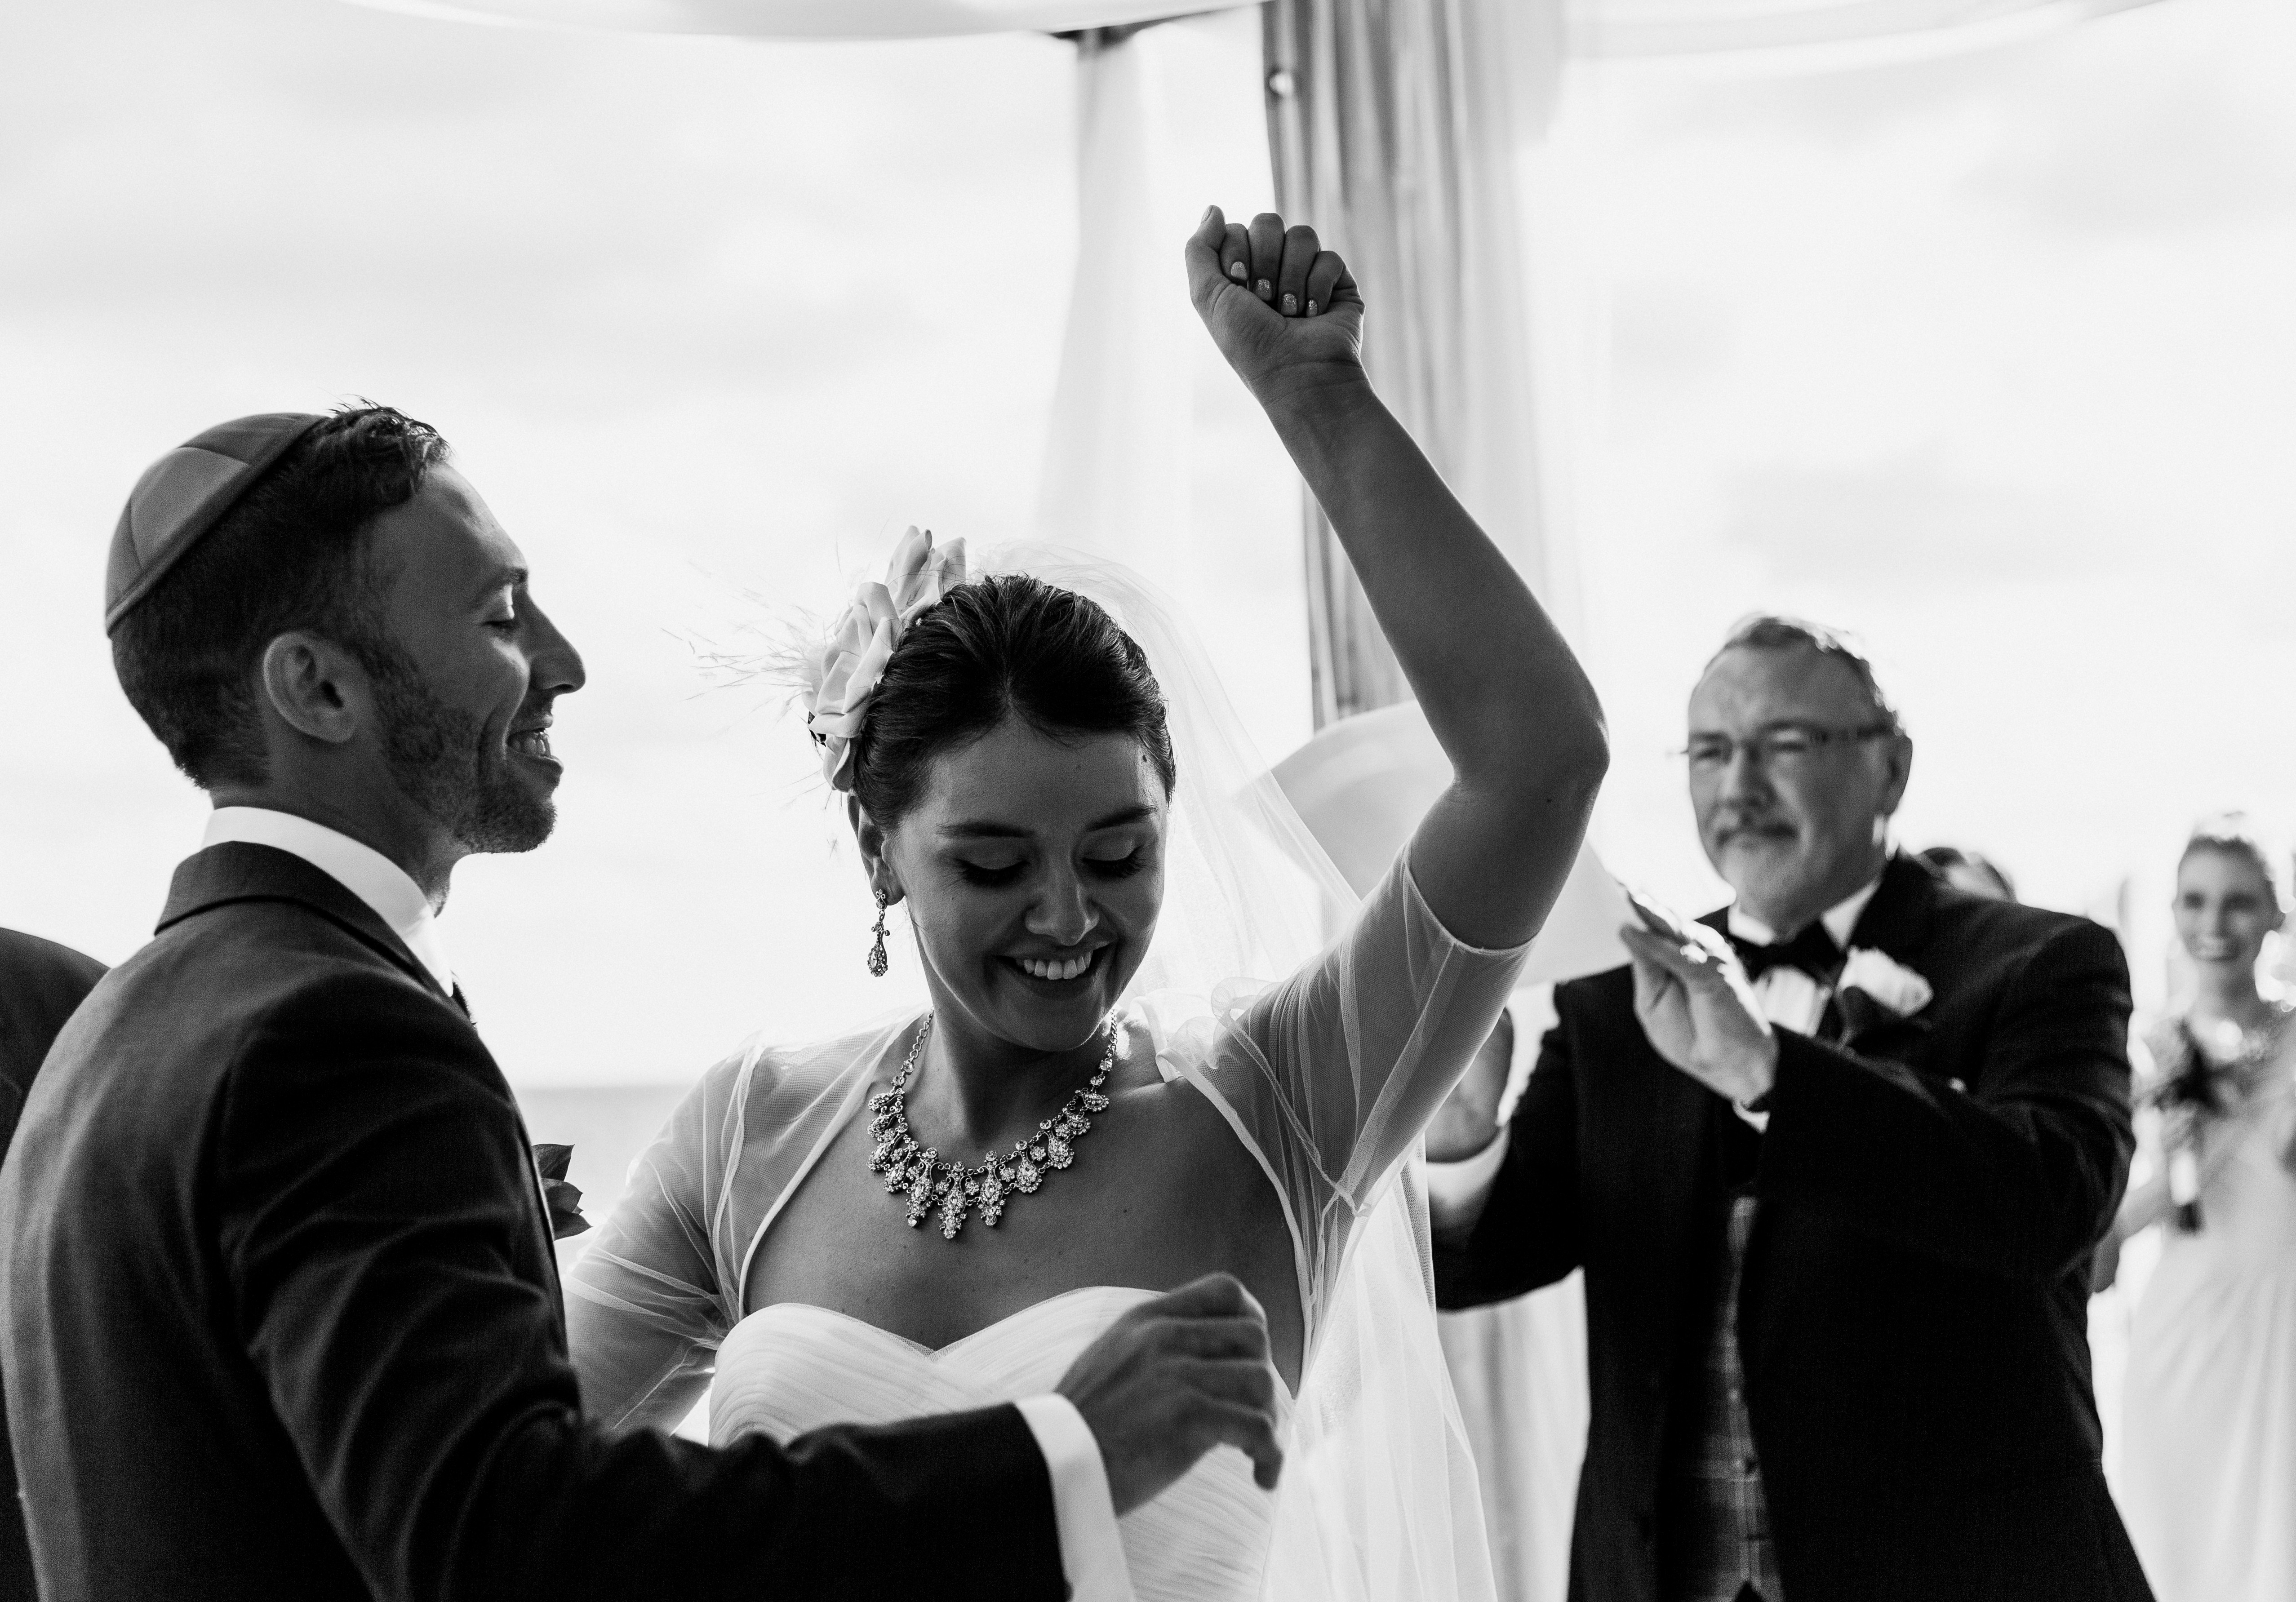 Jewish bride wearing a sweetheart wedding gown with statement diamond necklace gives a fist pump as they are pronounced man and wife